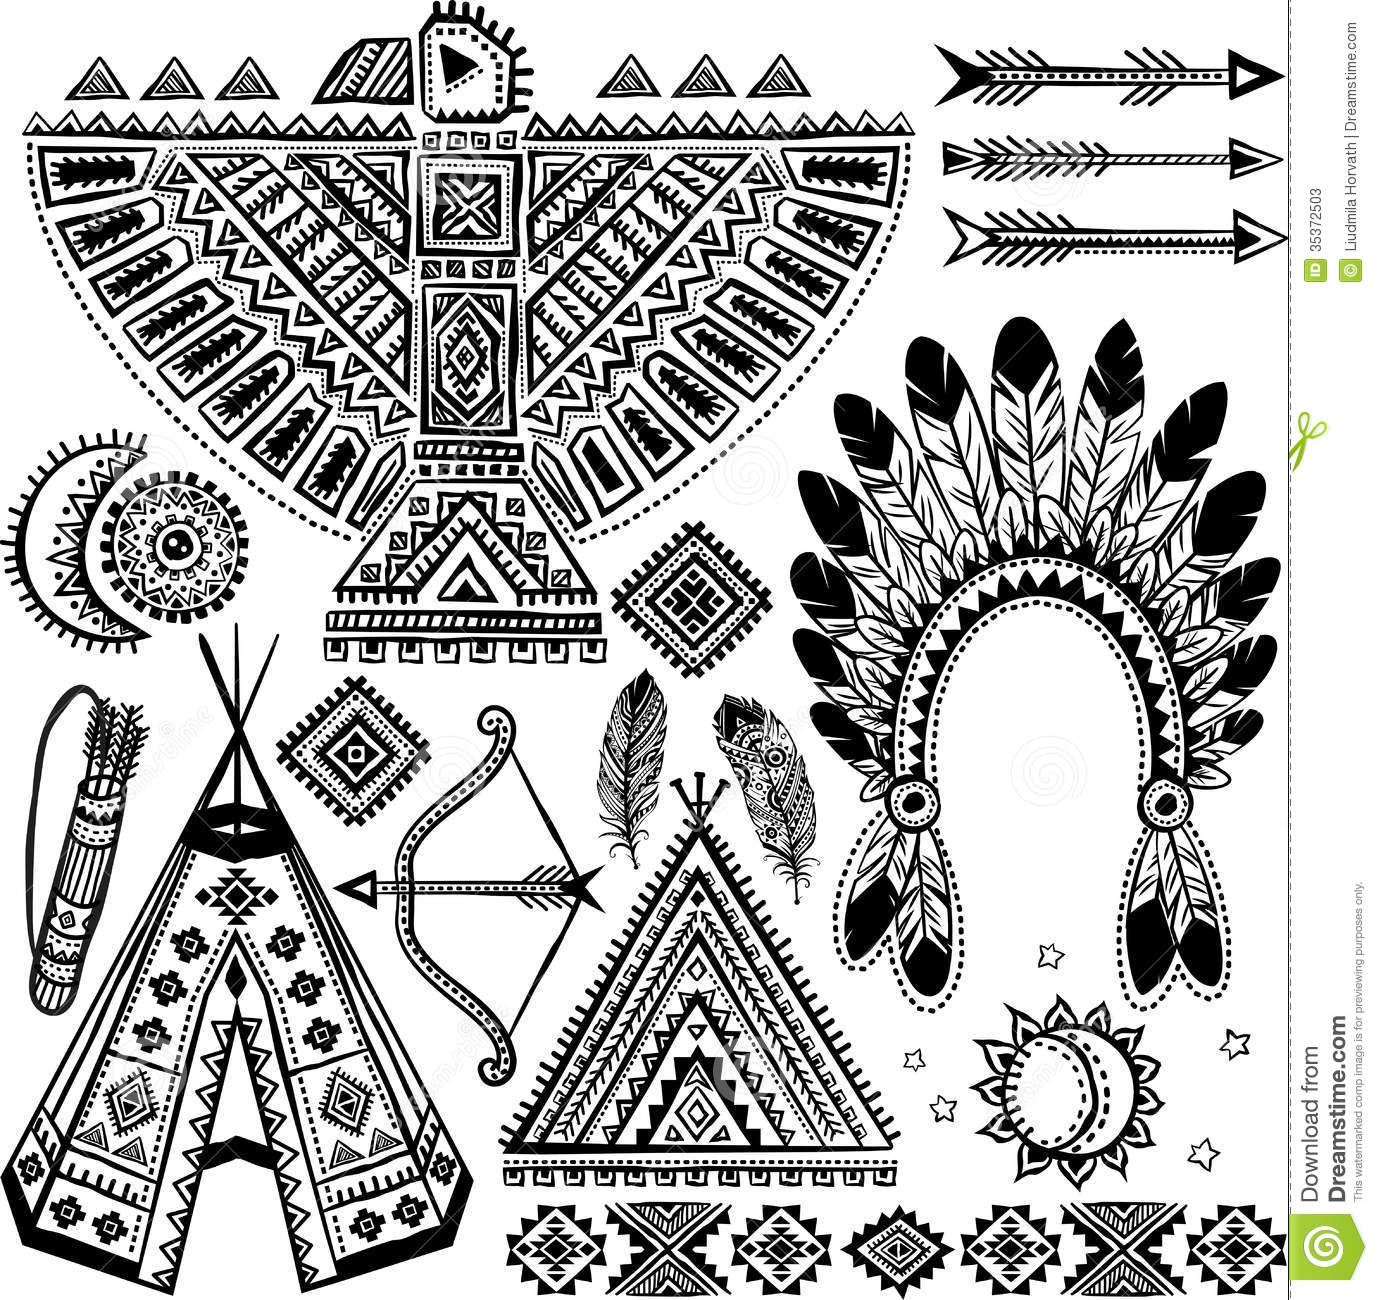 Native american ornaments - Native American Symbols Google Search